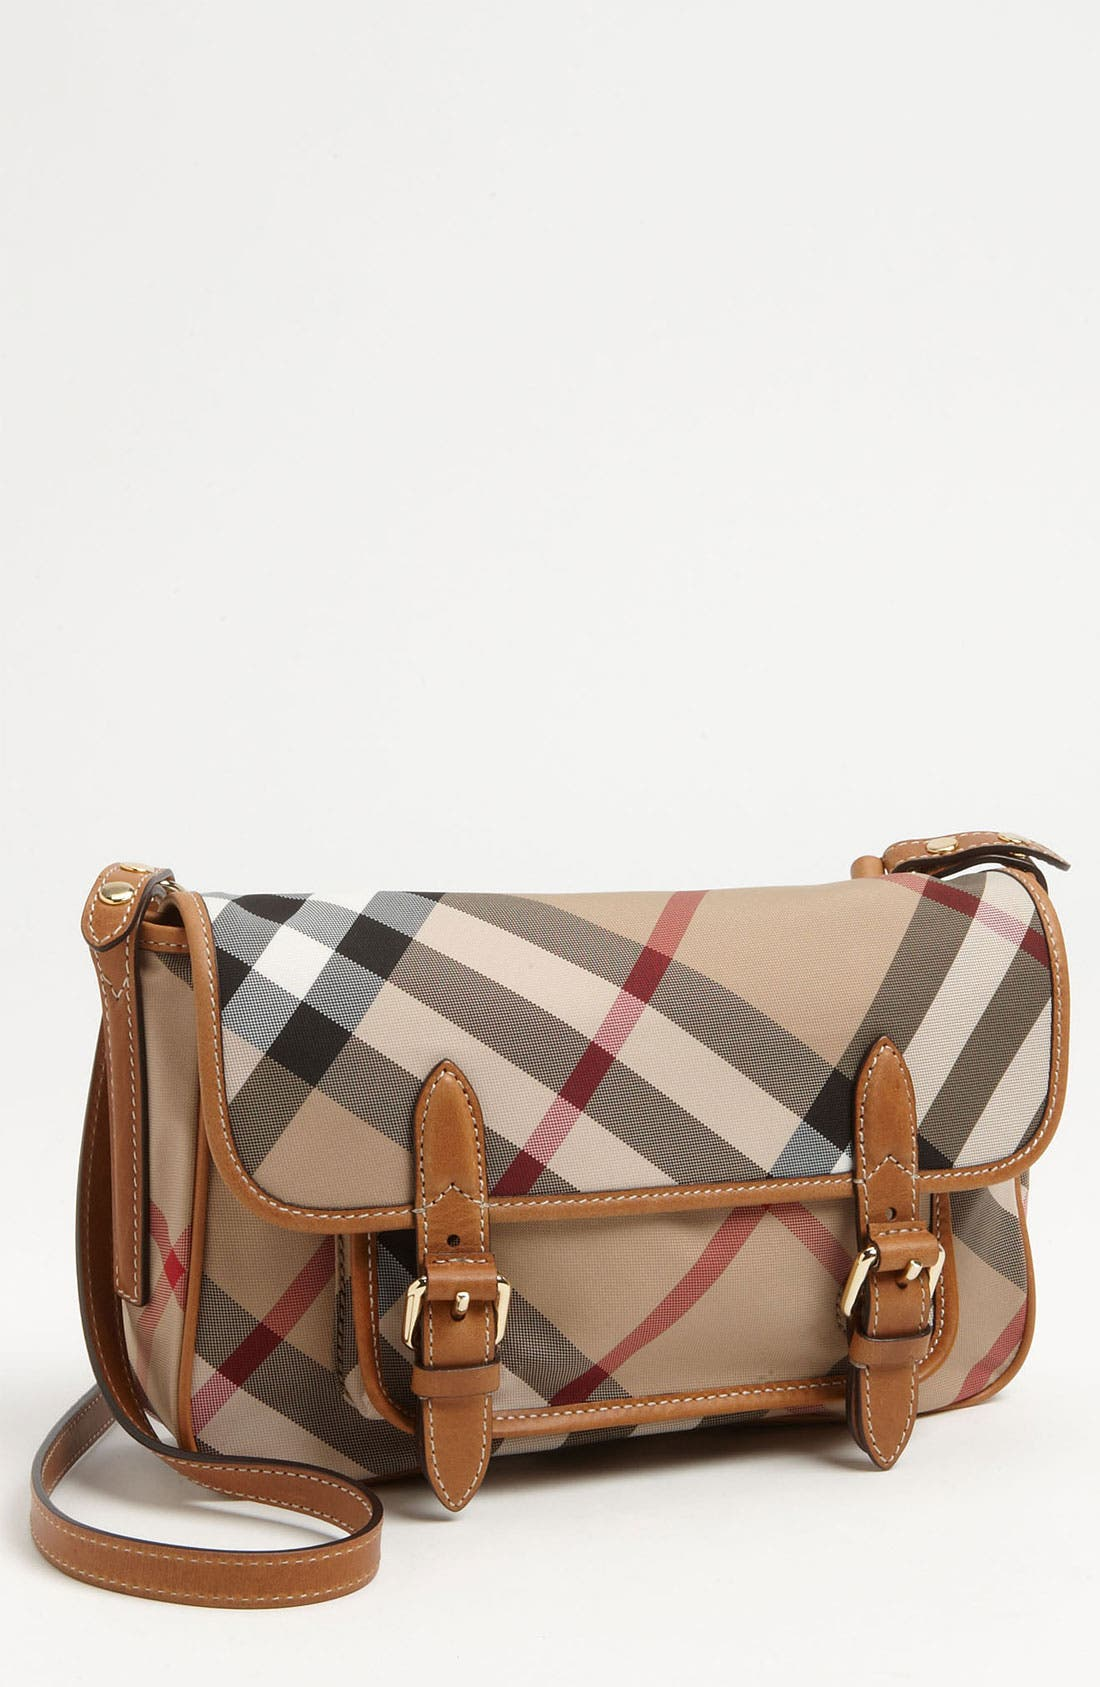 Alternate Image 1 Selected - Burberry 'Liv' Check Print Crossbody Bag (Girls)